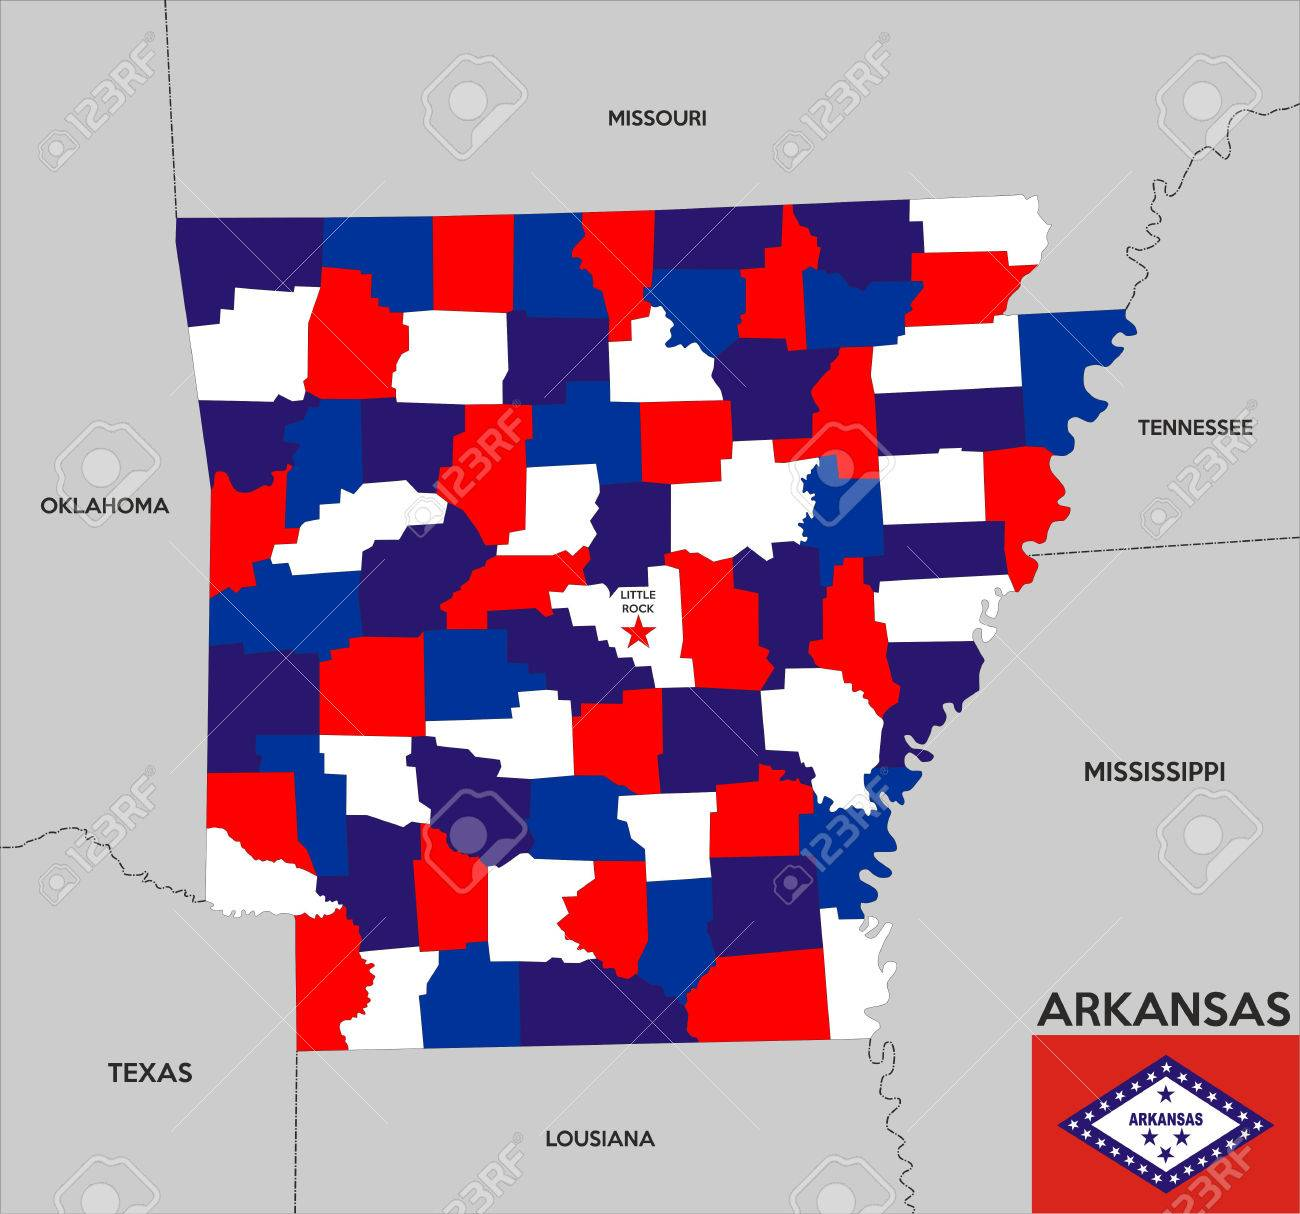 United States Of America Arkansas Republic Political Map With - Us map with arkansas